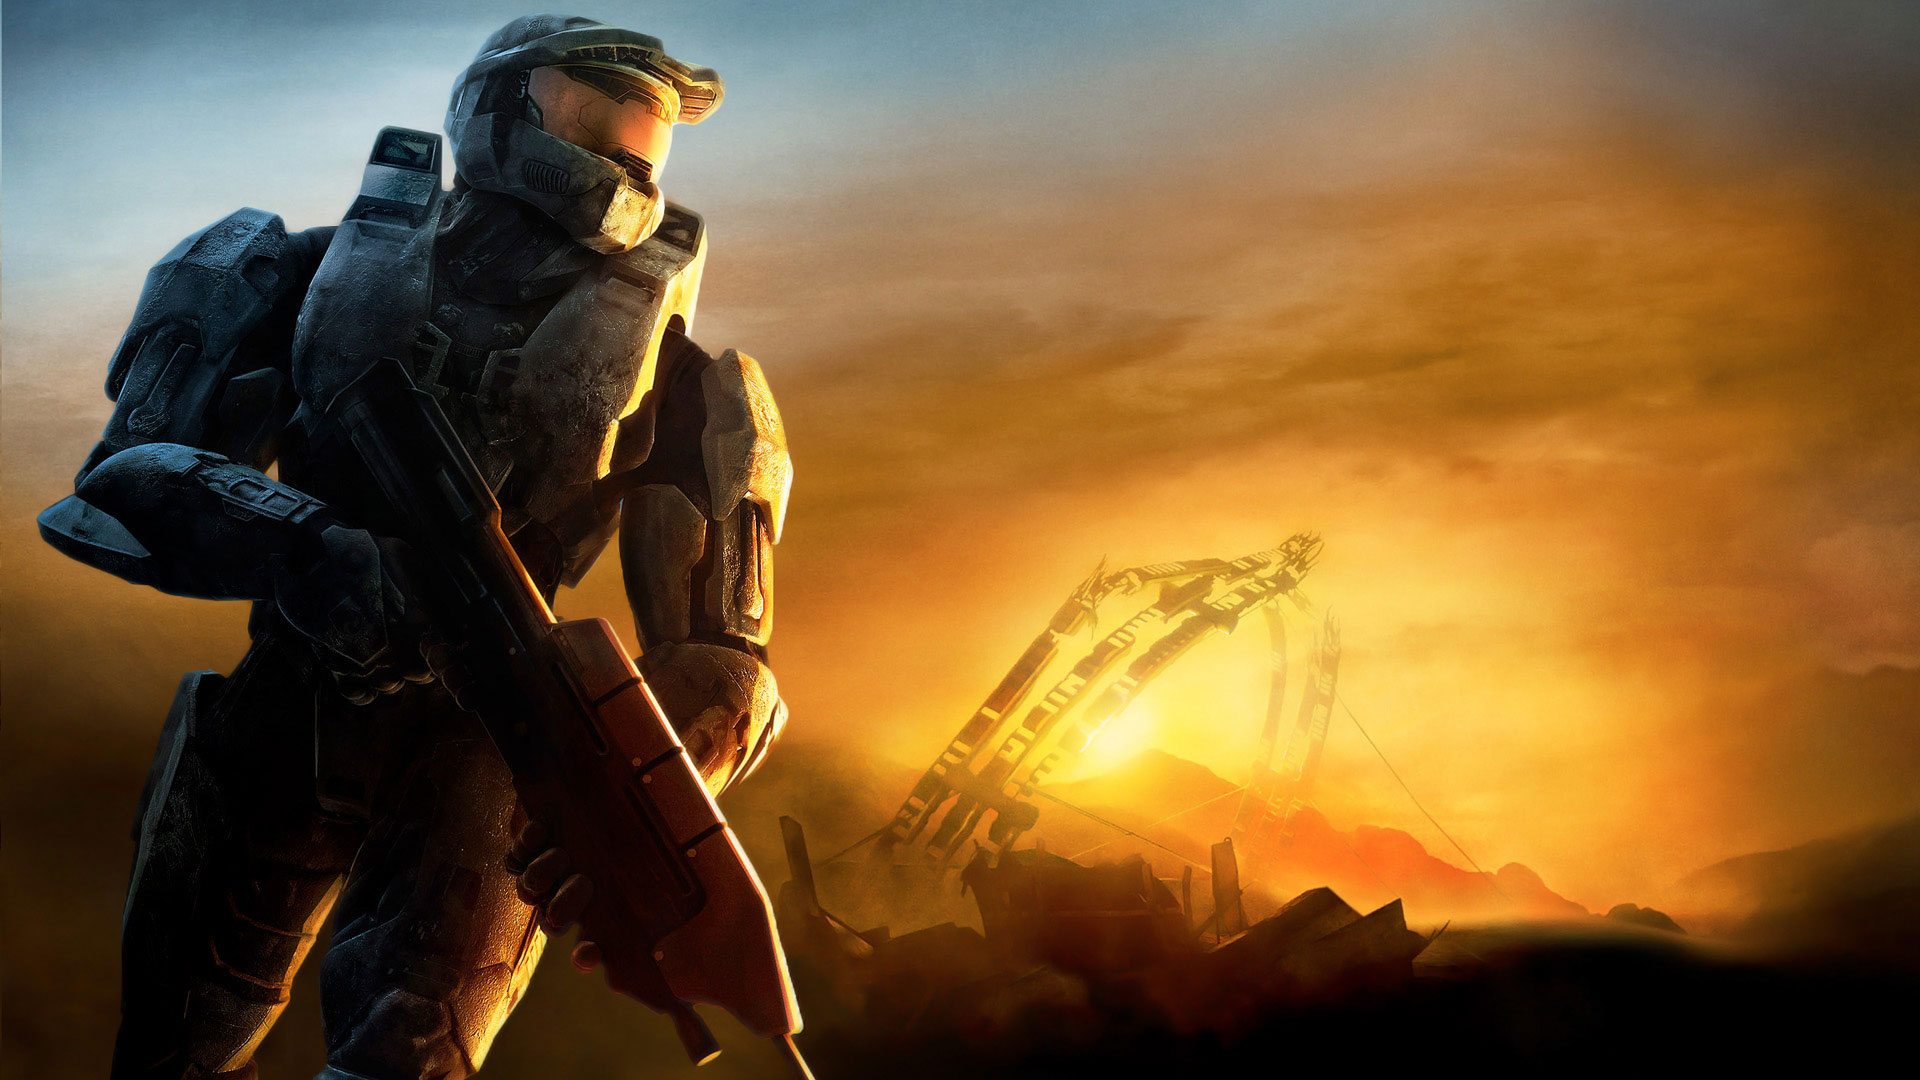 Halo Wallpaper Image Backgrounds 1080p 7832 Wallpaper Cool 1920x1080